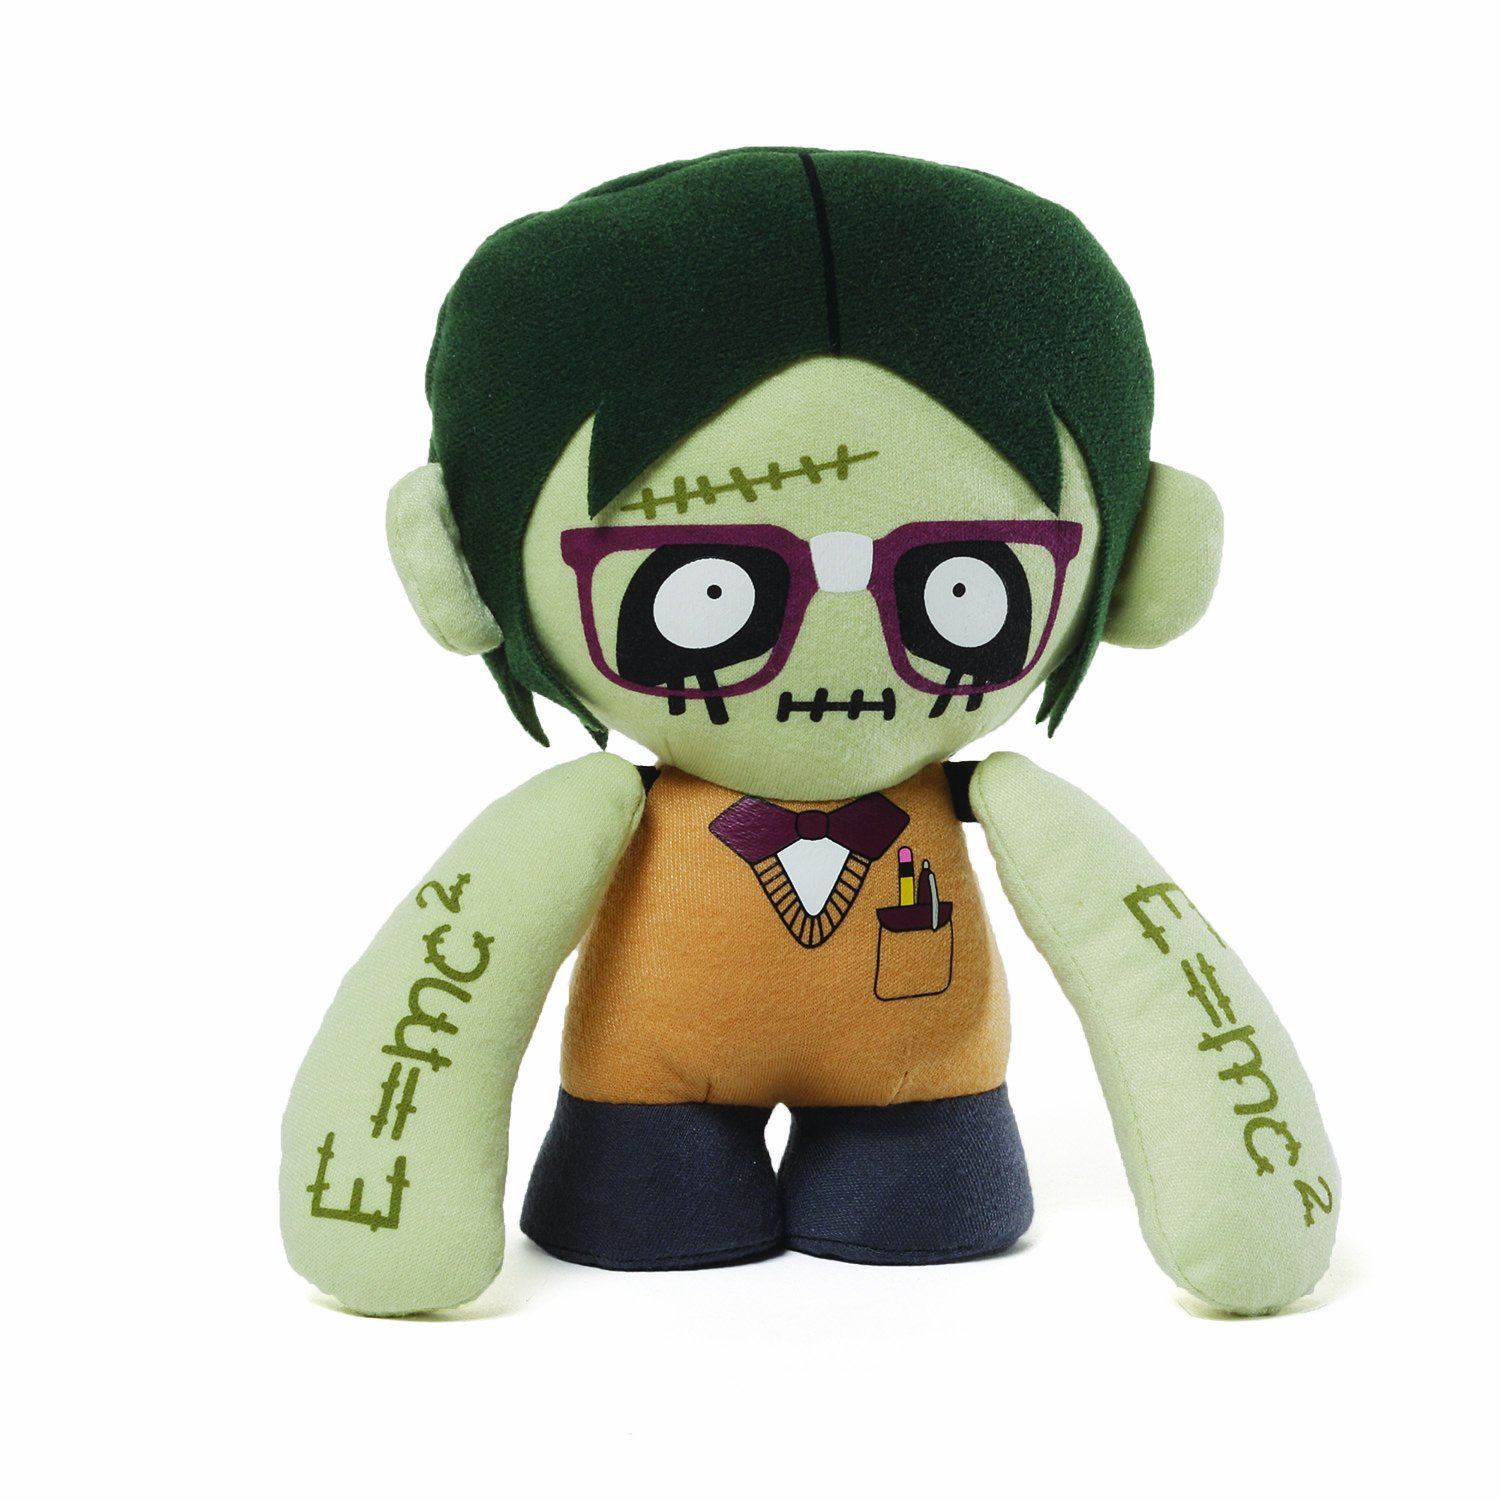 Gund Green Zombie Nerd Plush Soft Toy Design